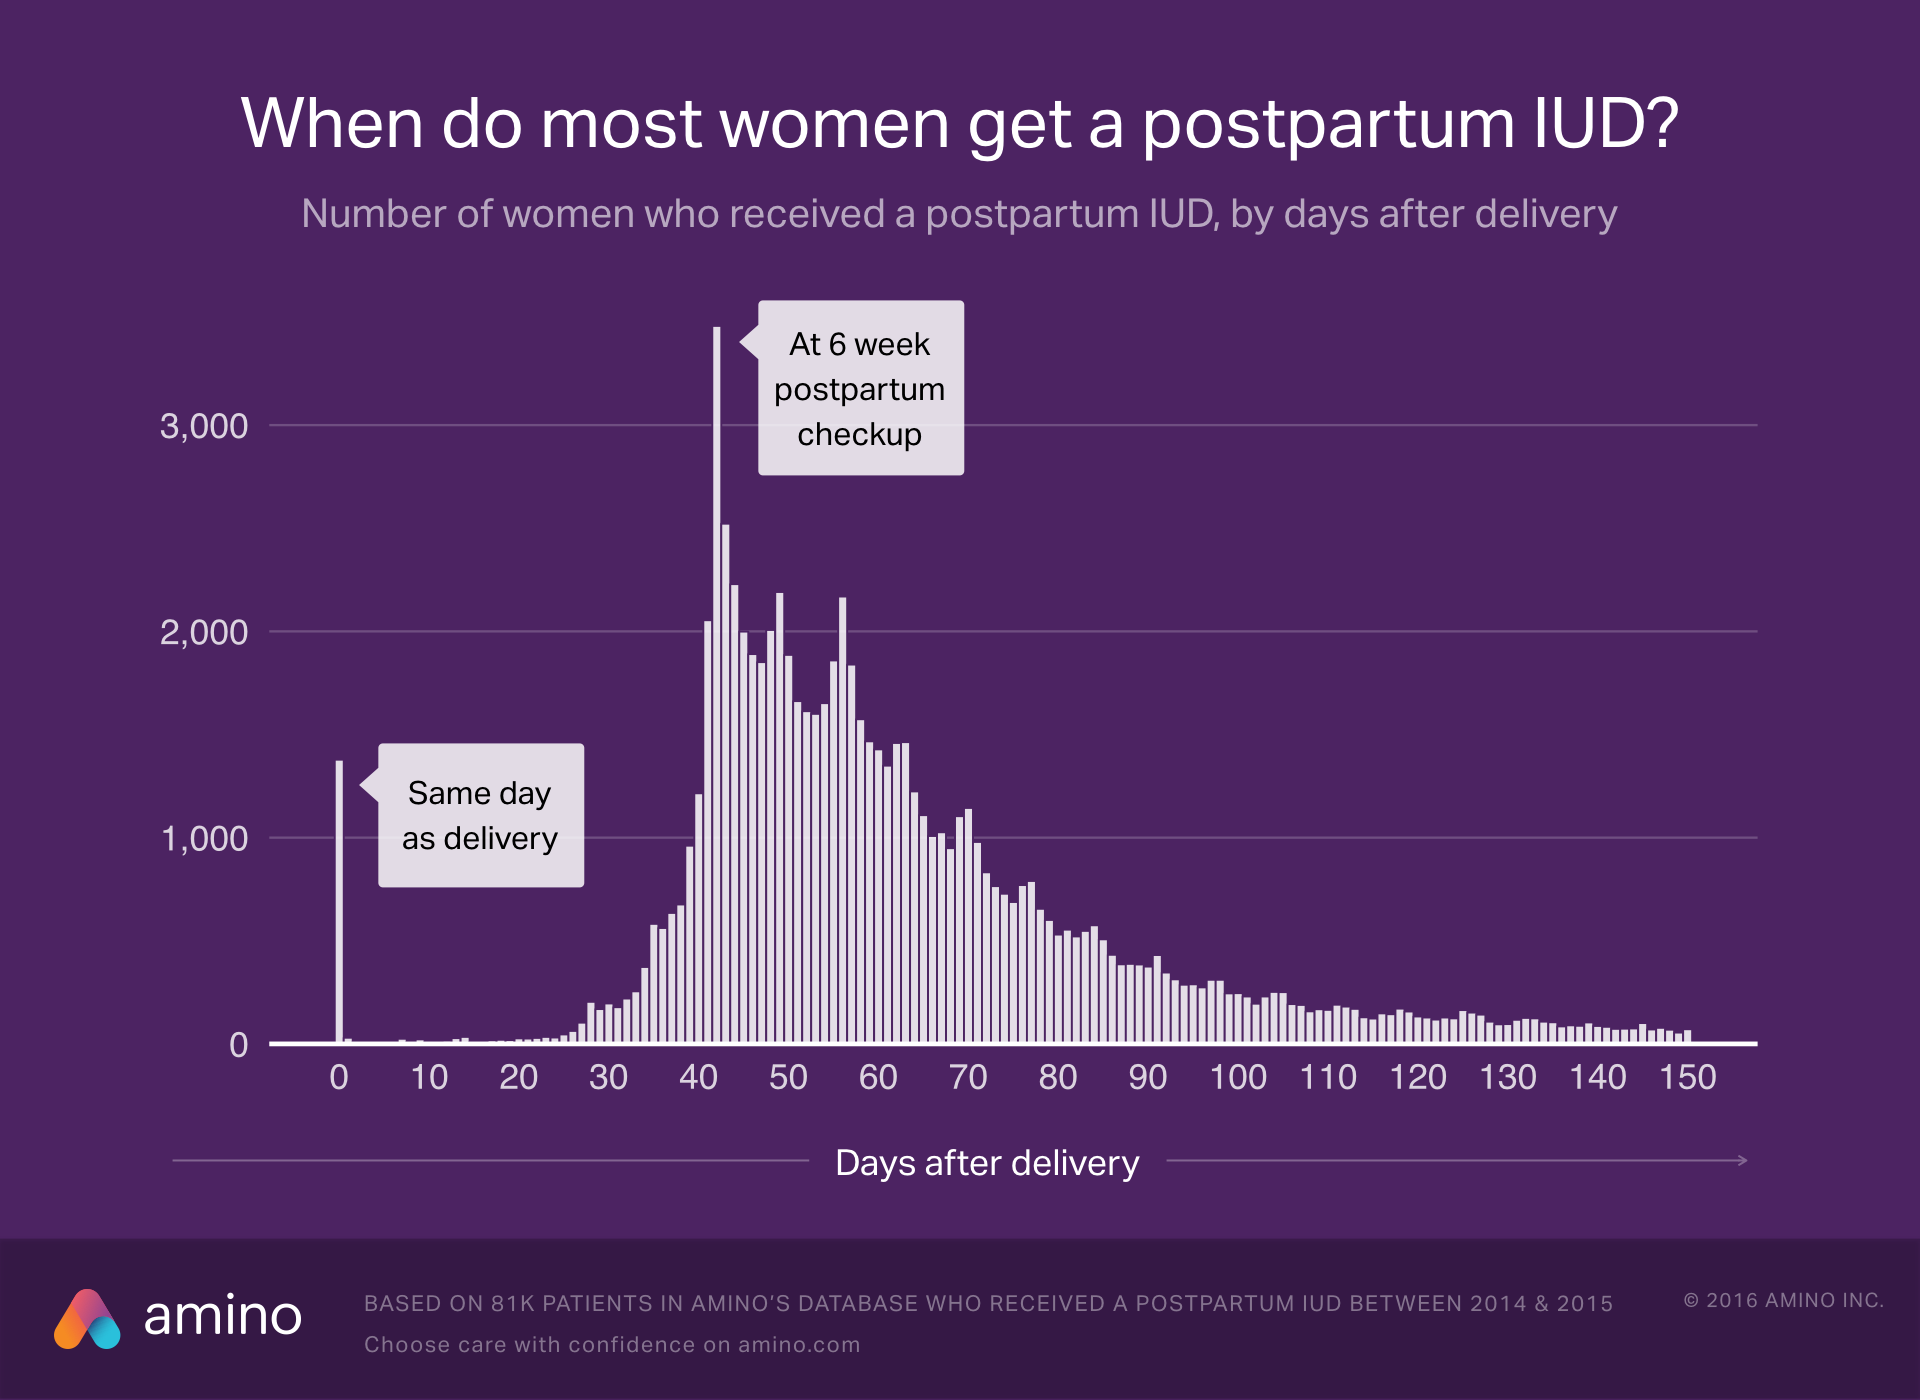 When do most women get a postpartum IUD?